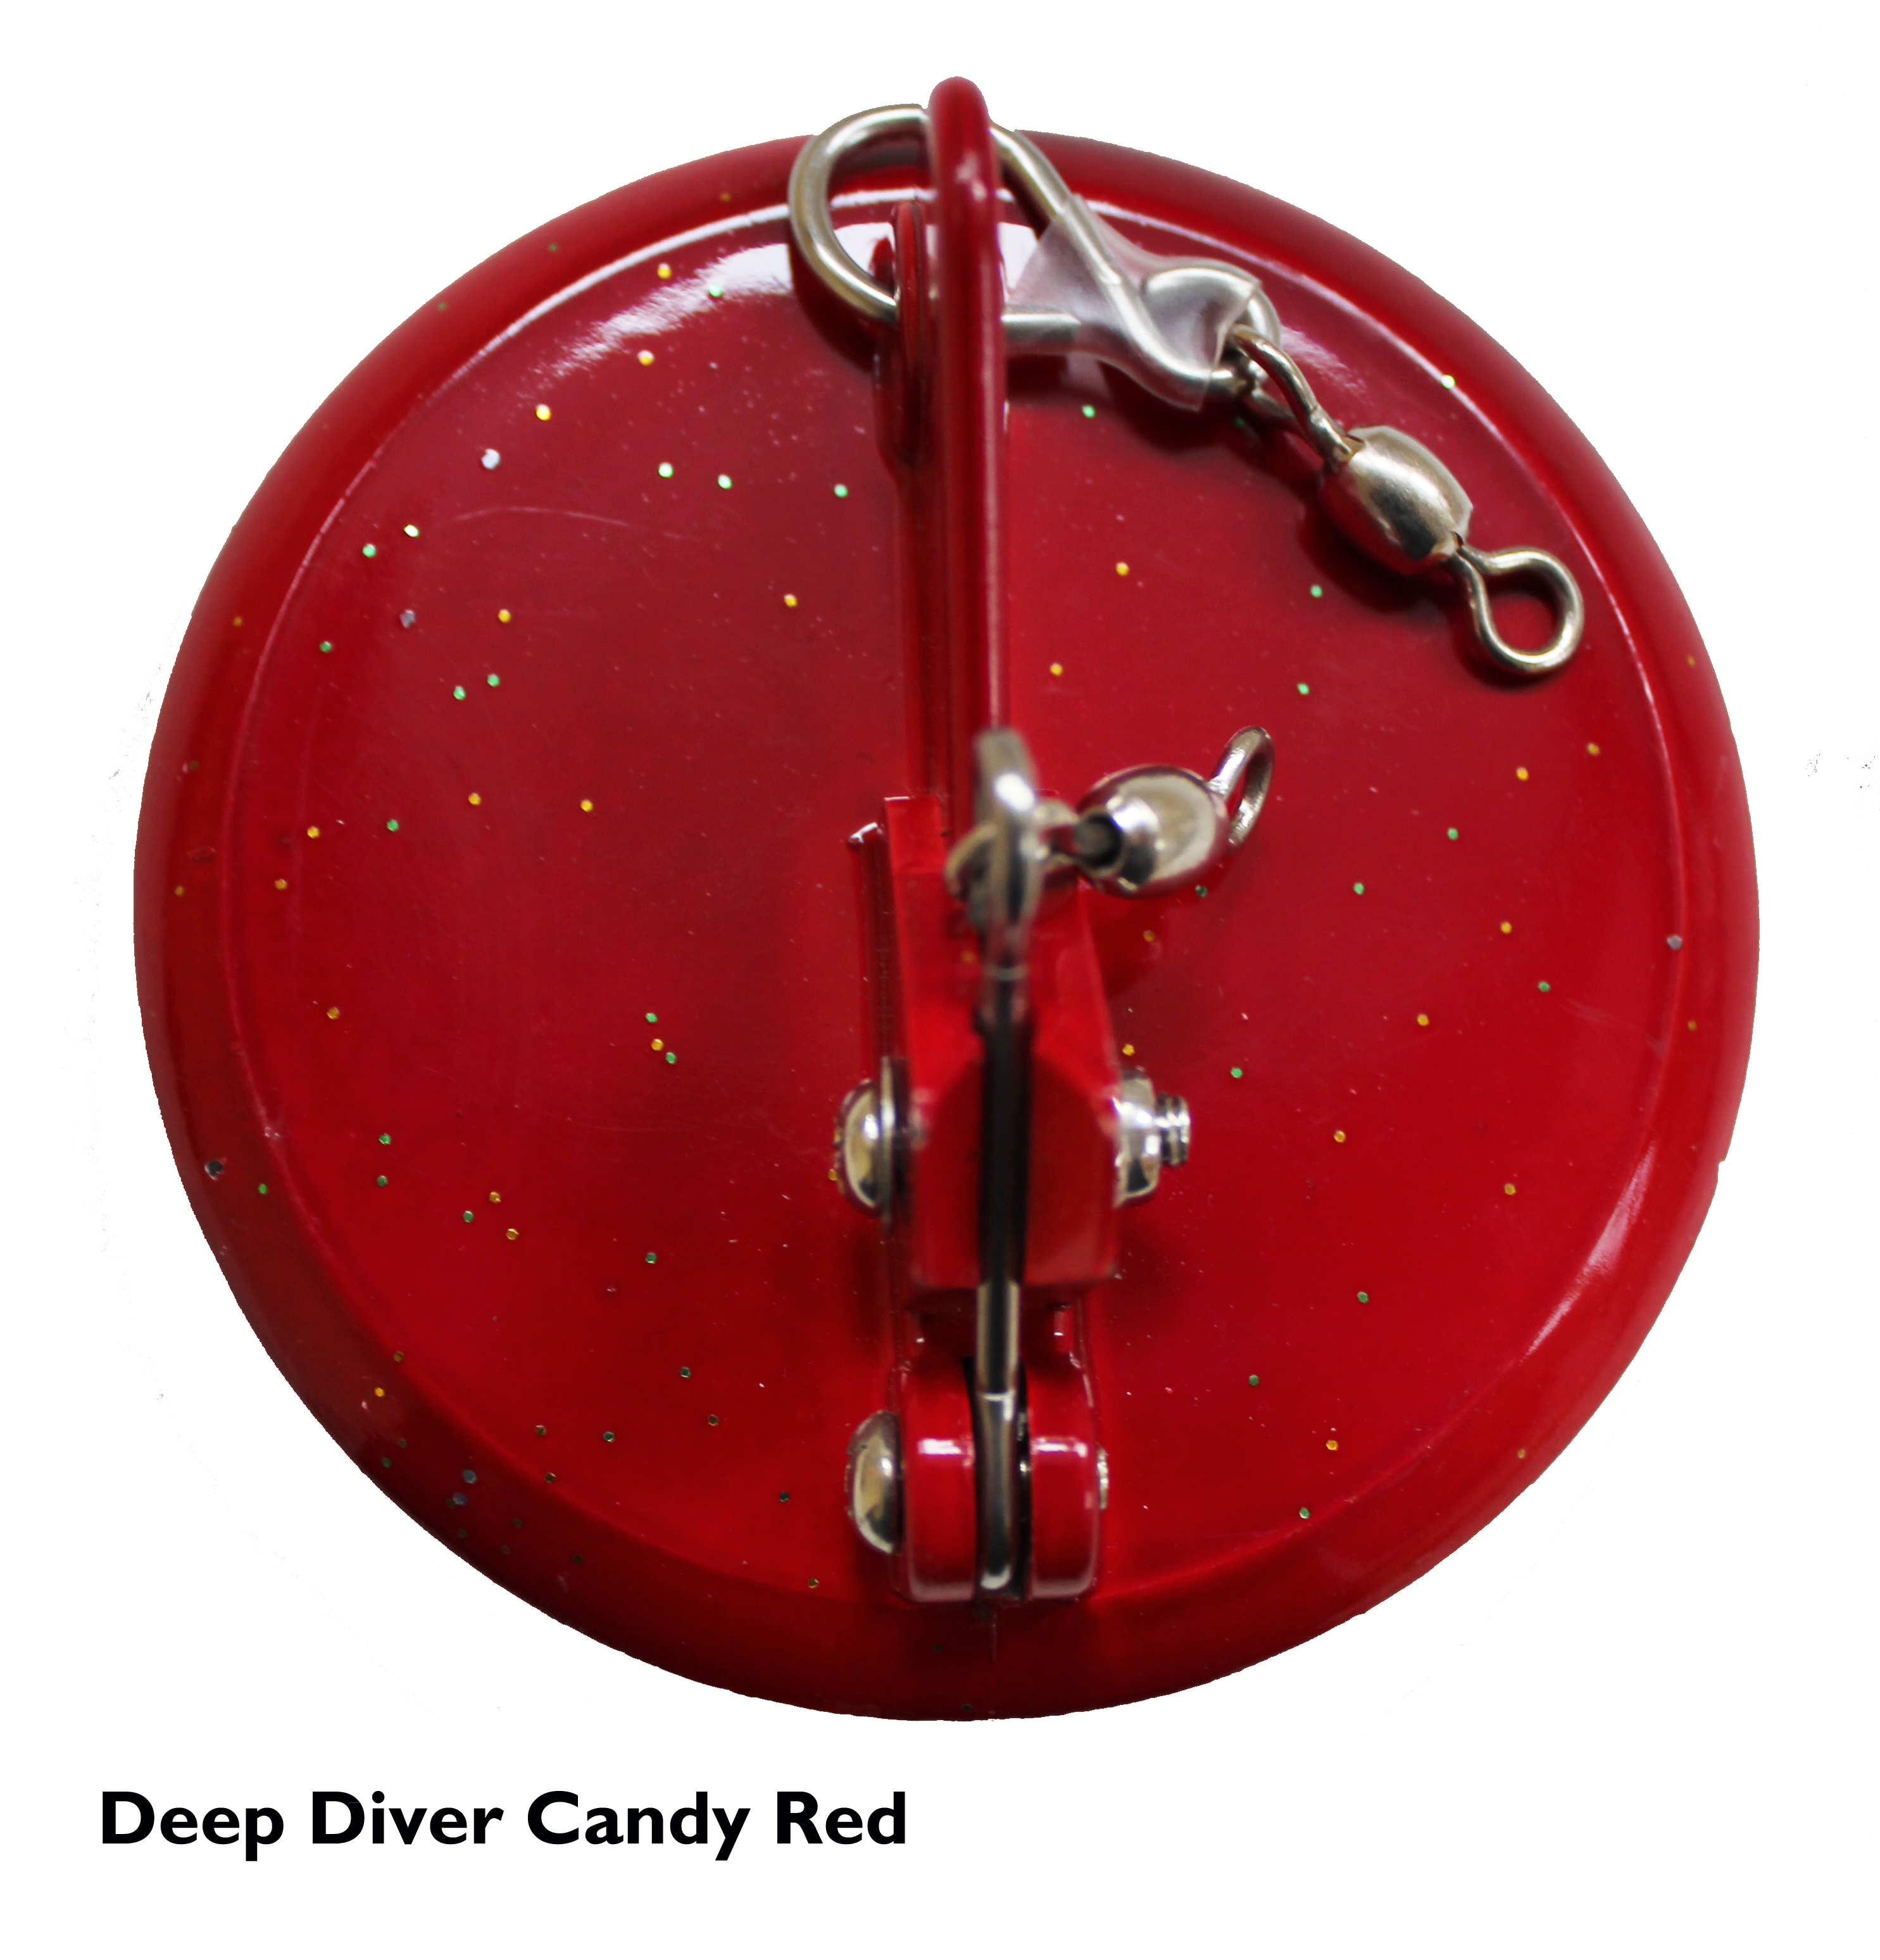 DC Deeper Diver 65mm Candy Red